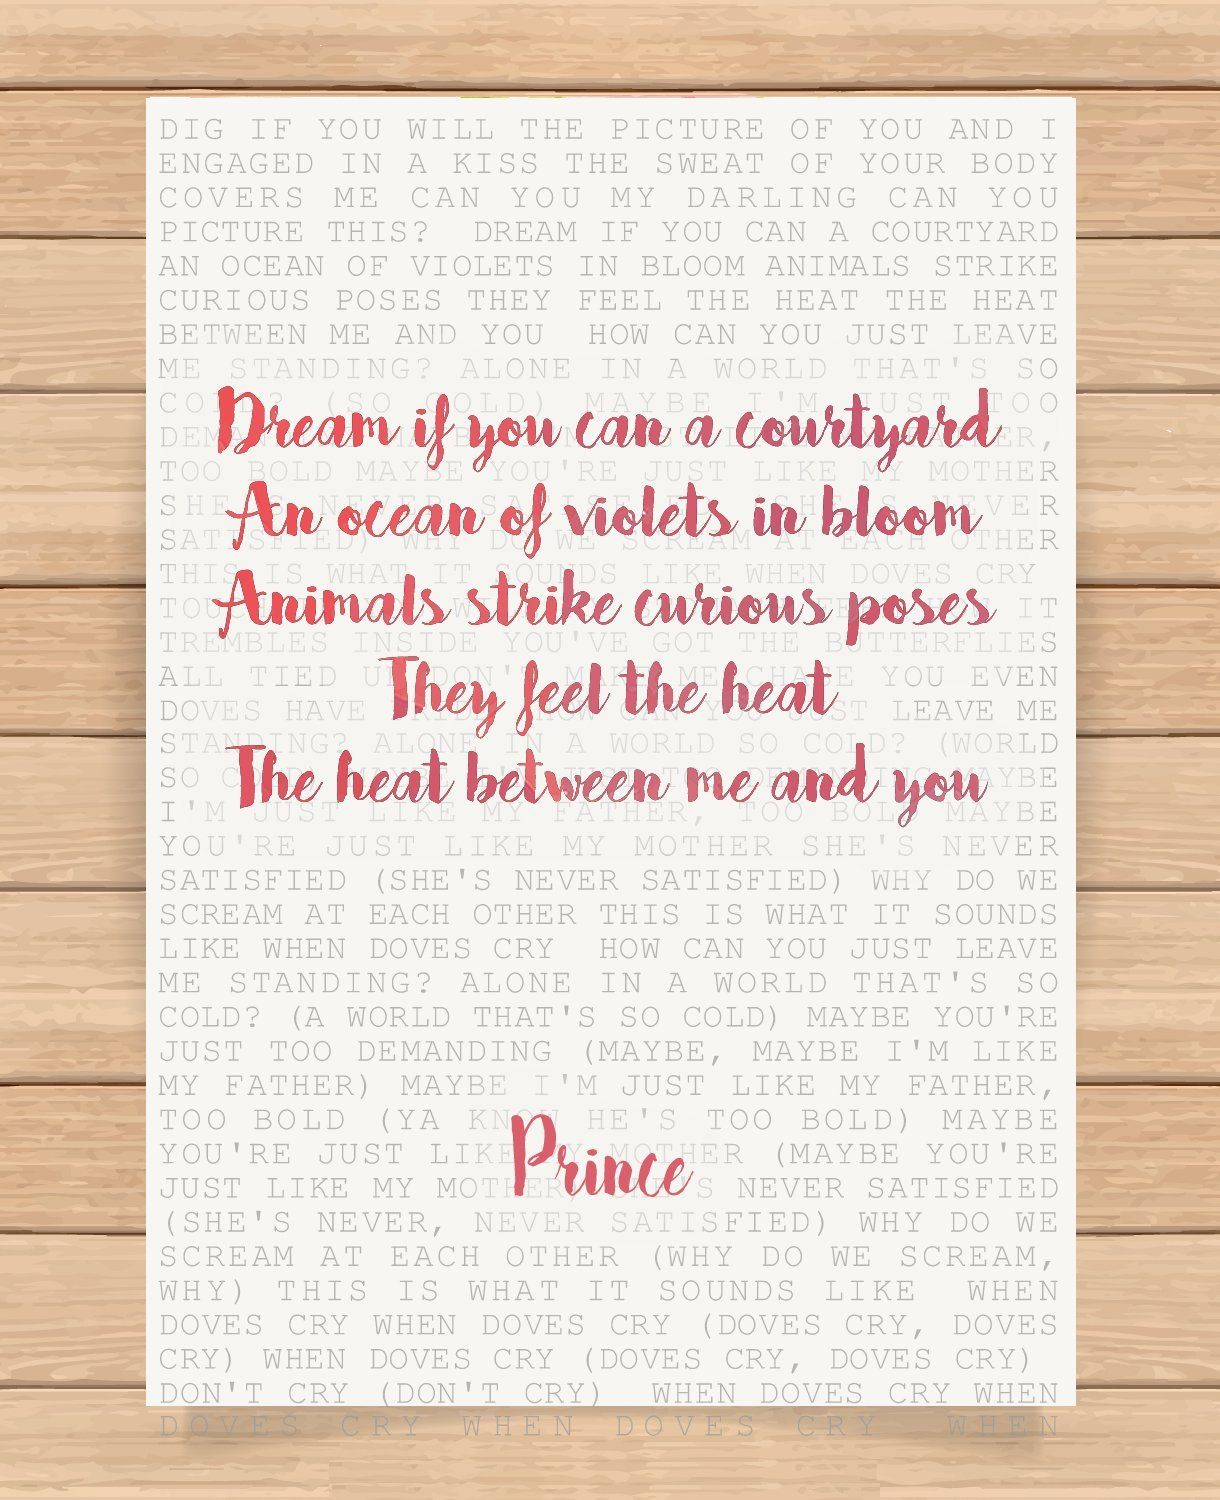 Prince Song Lyrics Quotes Wedding Anniversary Romantic Love Presents Gifts For Husband Wife Him Her Girlfri Song Lyric Quotes Boyfriend Valentine Romantic Love